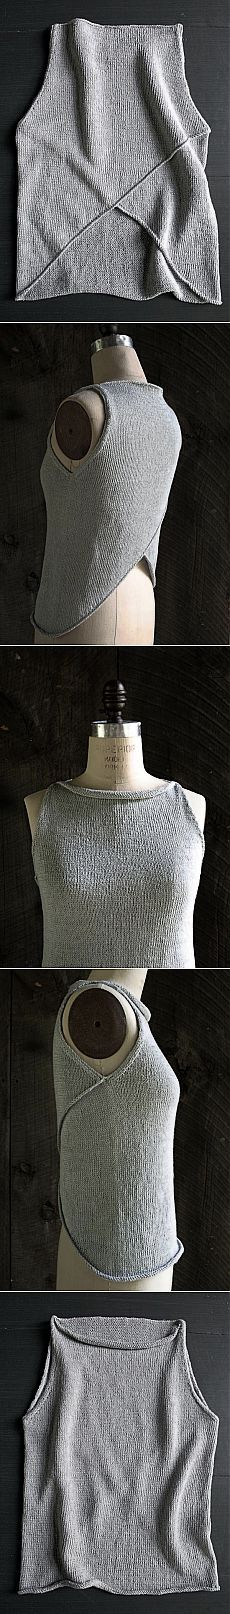 Laura's Loop: Tulip Tank Top - The Purl Bee - Knitting Crochet Sewing Embroidery Crafts Patterns and Ideas!